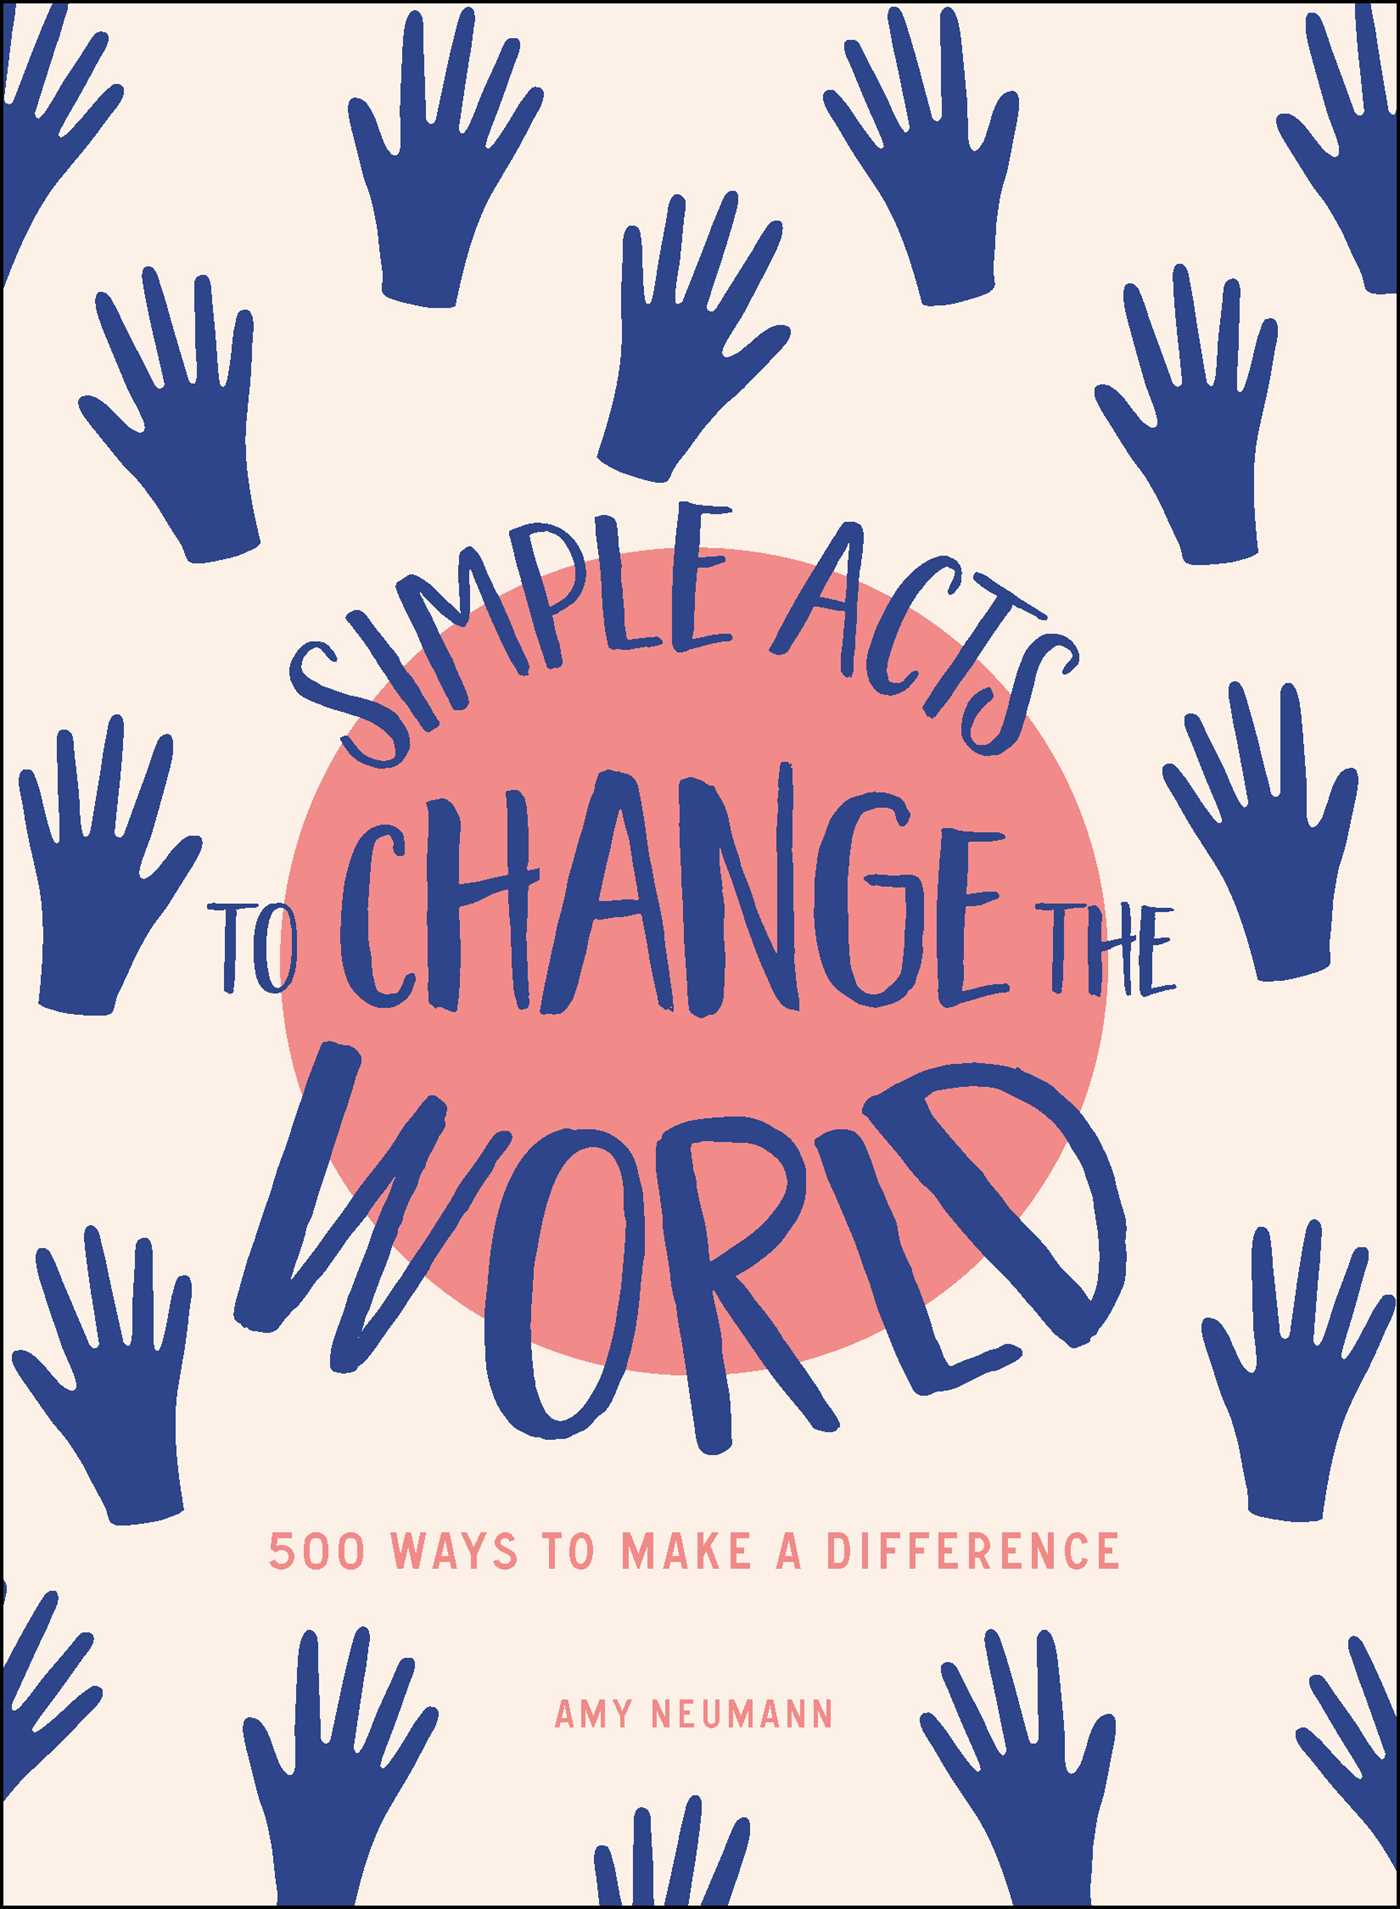 Simple acts to change the world 9781507208977 hr